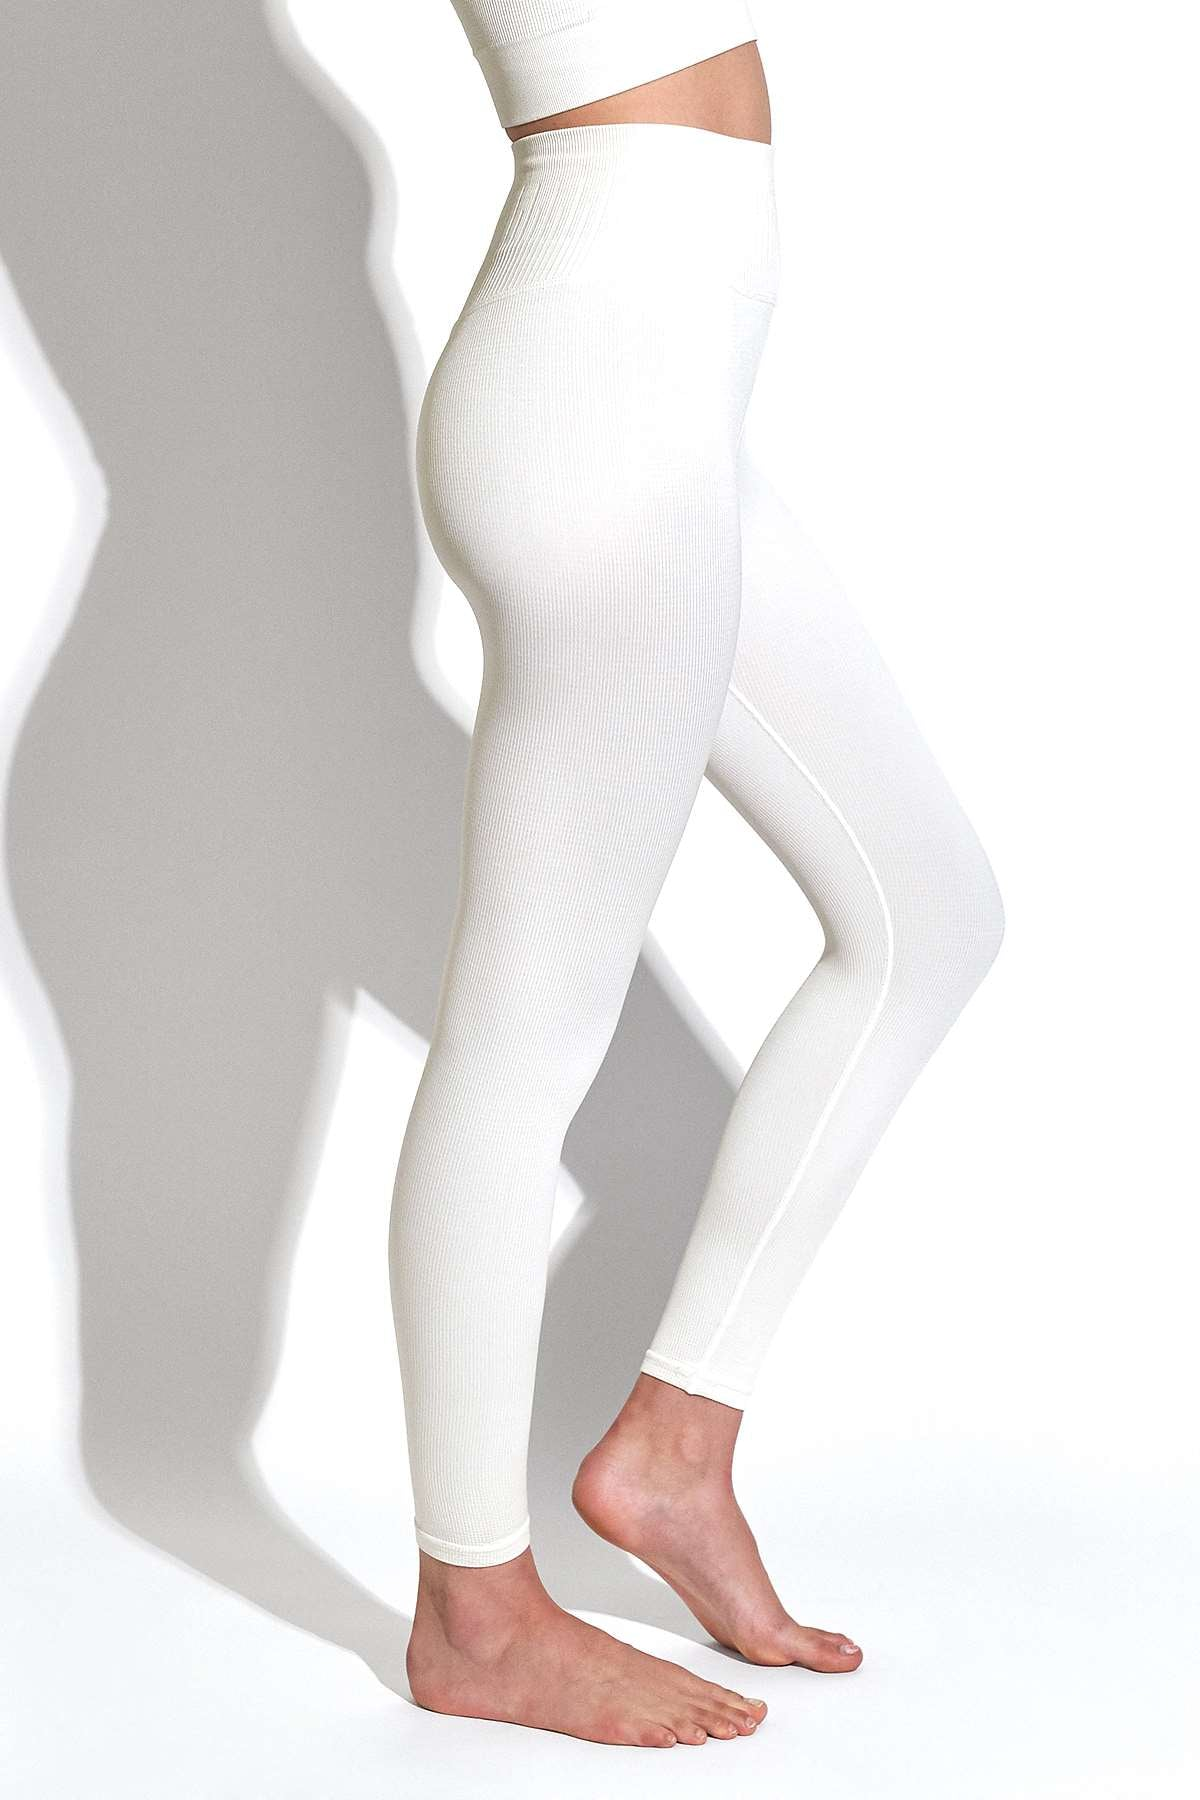 Selina Shiny Rib V-Back 7/8 Legging in White Sand